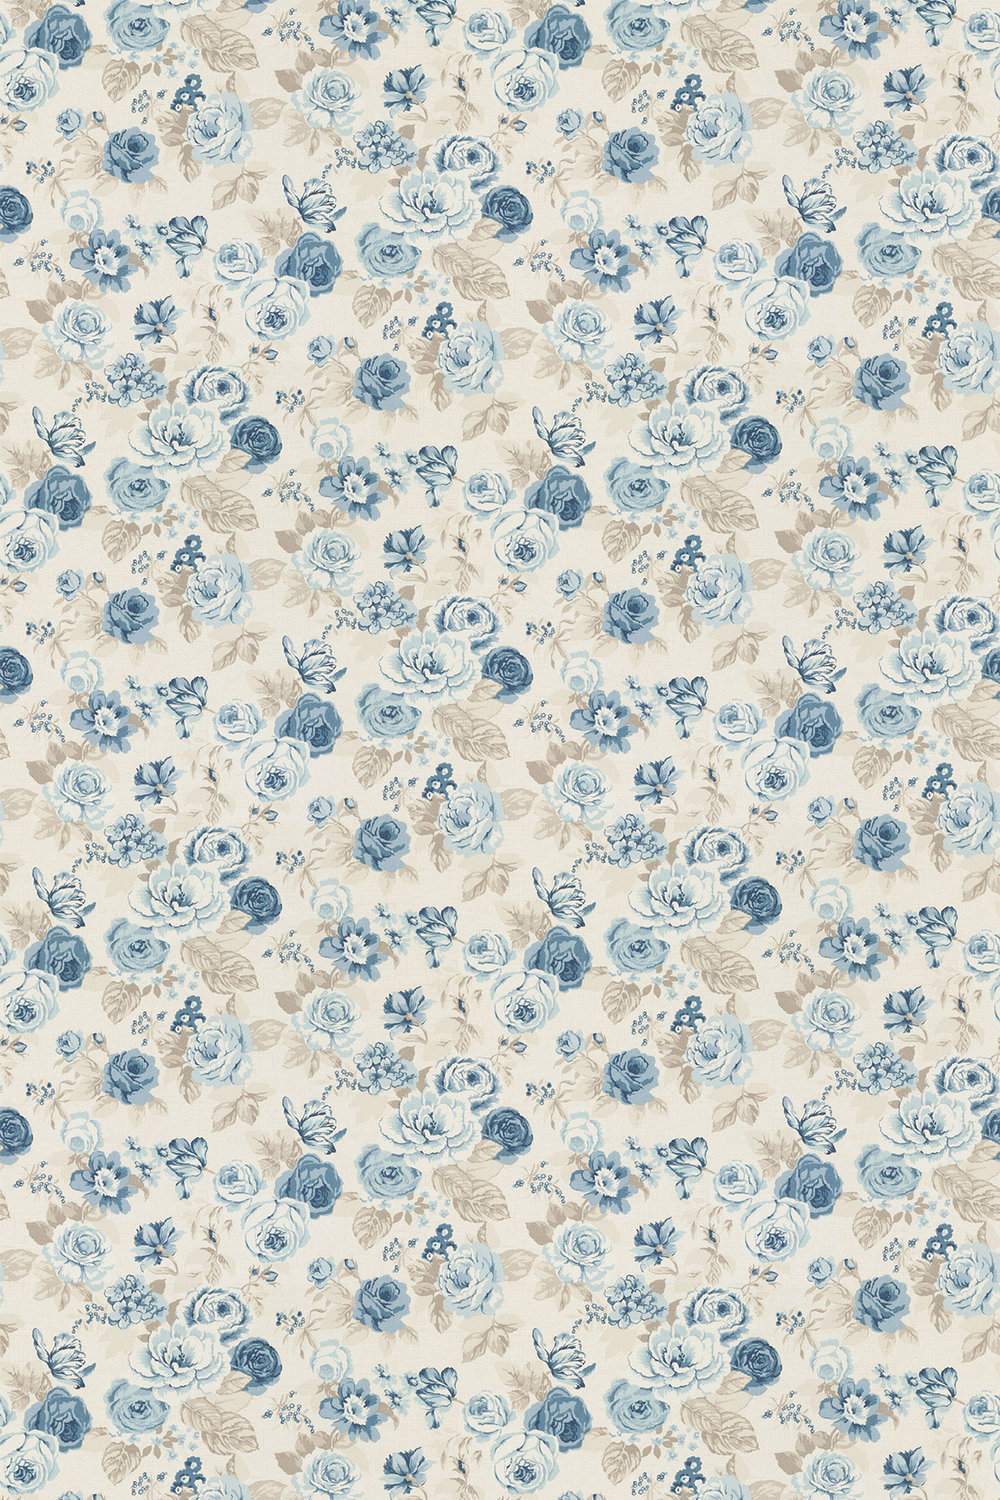 Studio G Genevieve Chambray Fabric - Product code: F0622/01